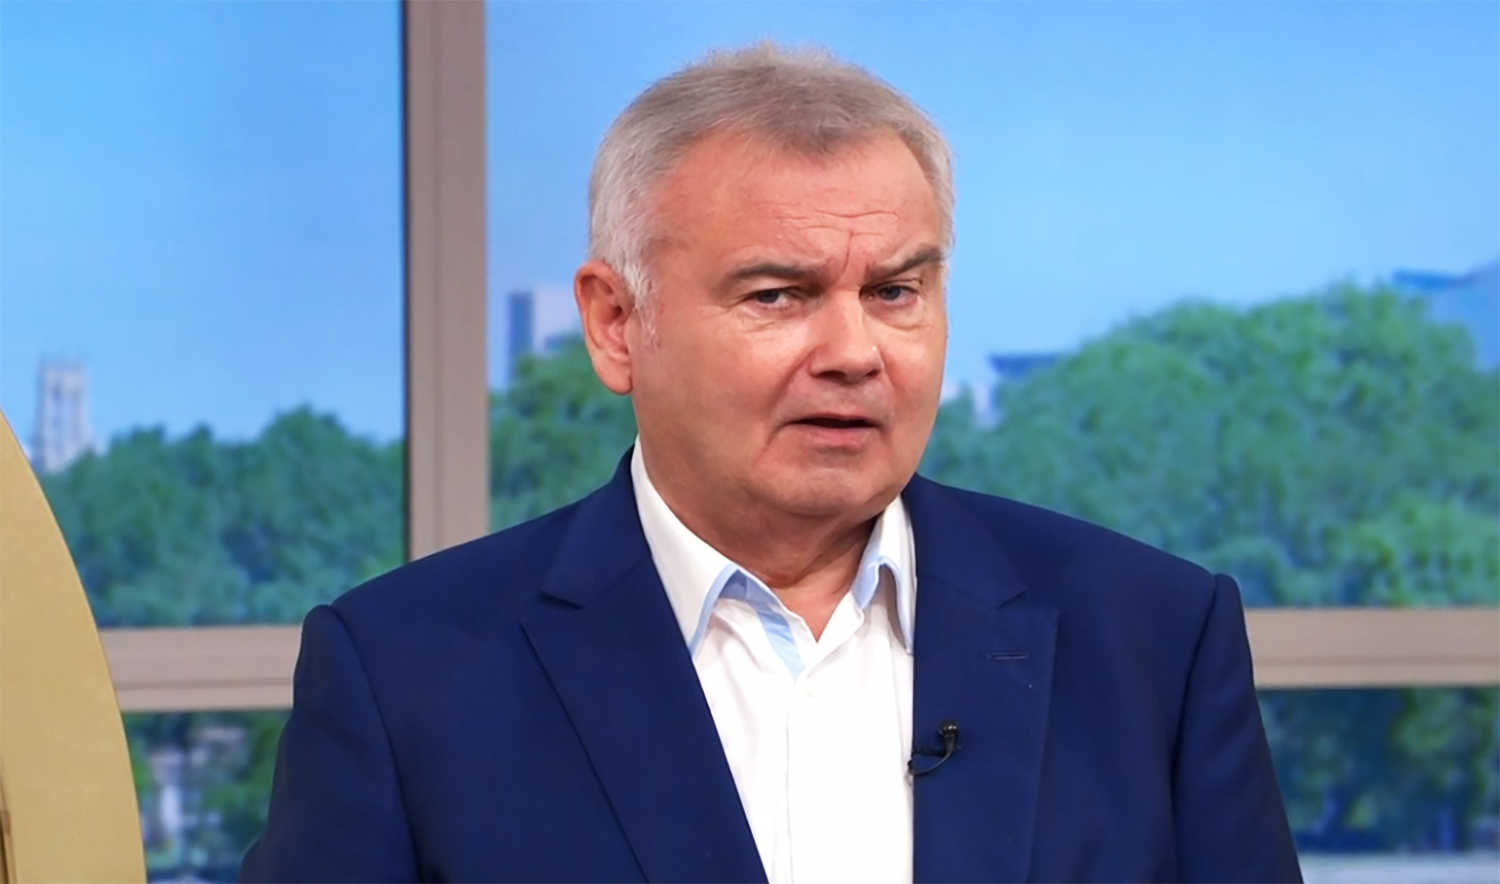 This Morning fans stunned as Eamonn Holmes asks caller to 'send a shower picture'